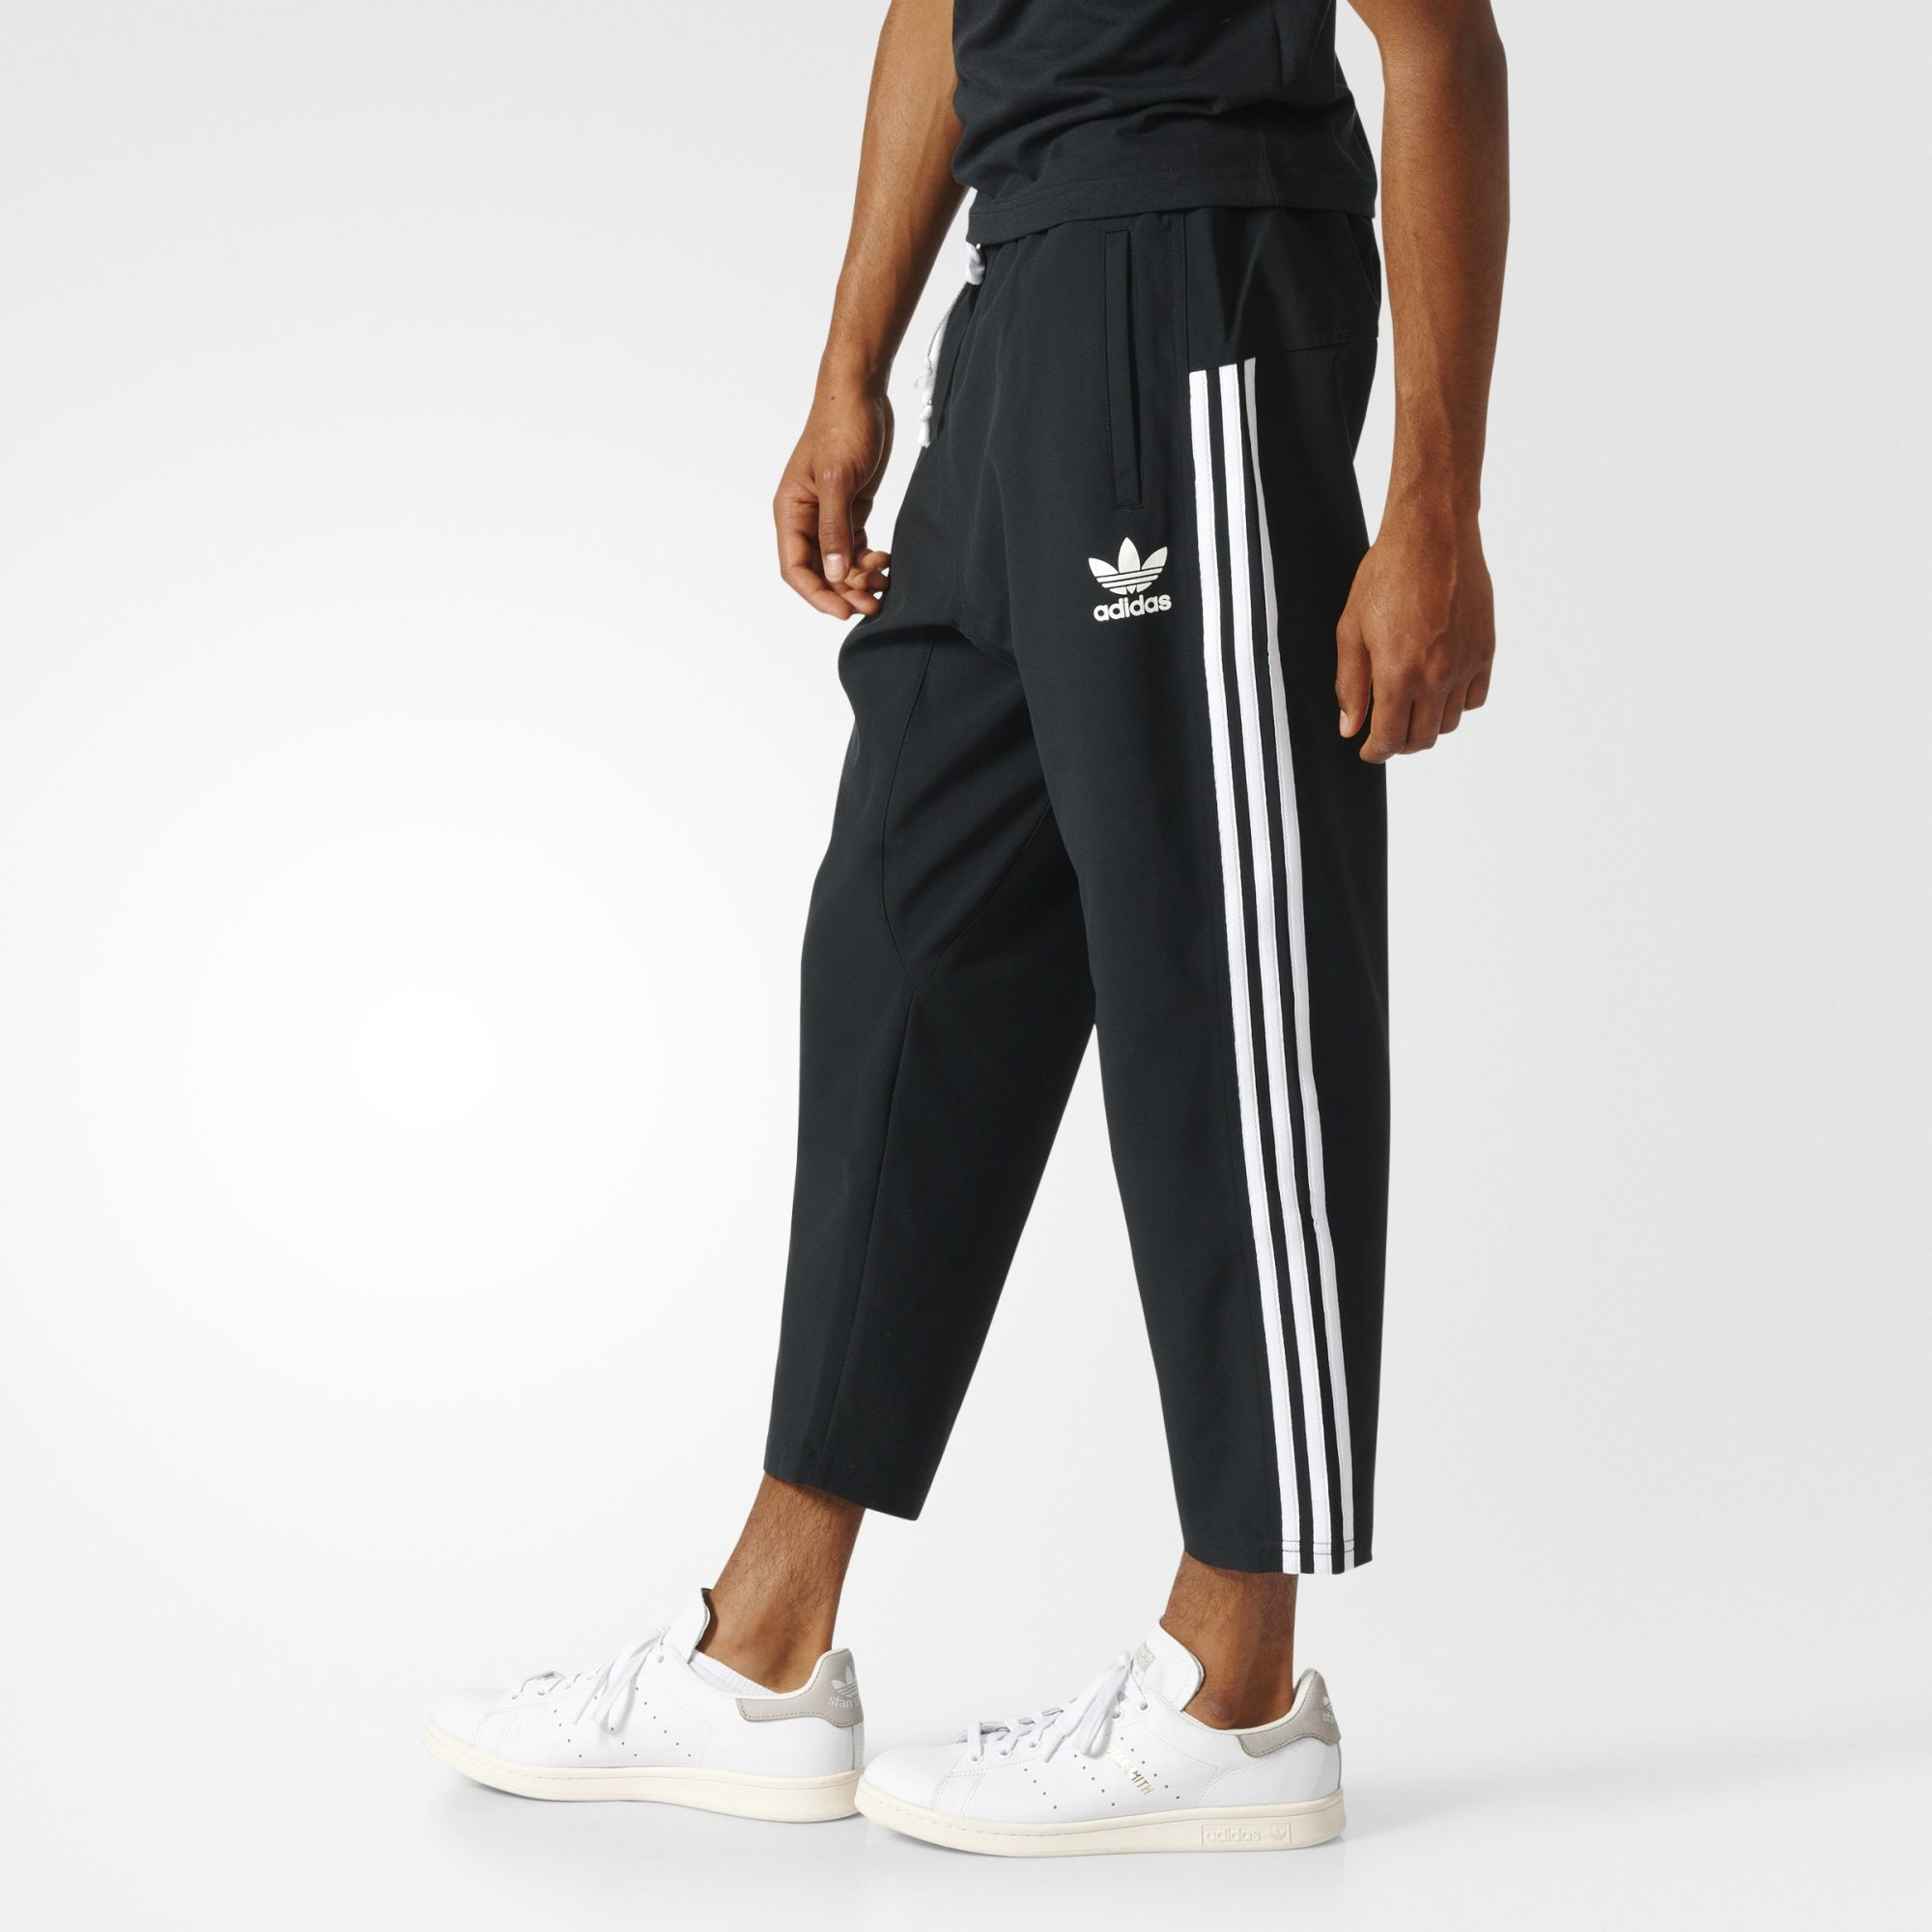 All styles and colours available in the official adidas online store.